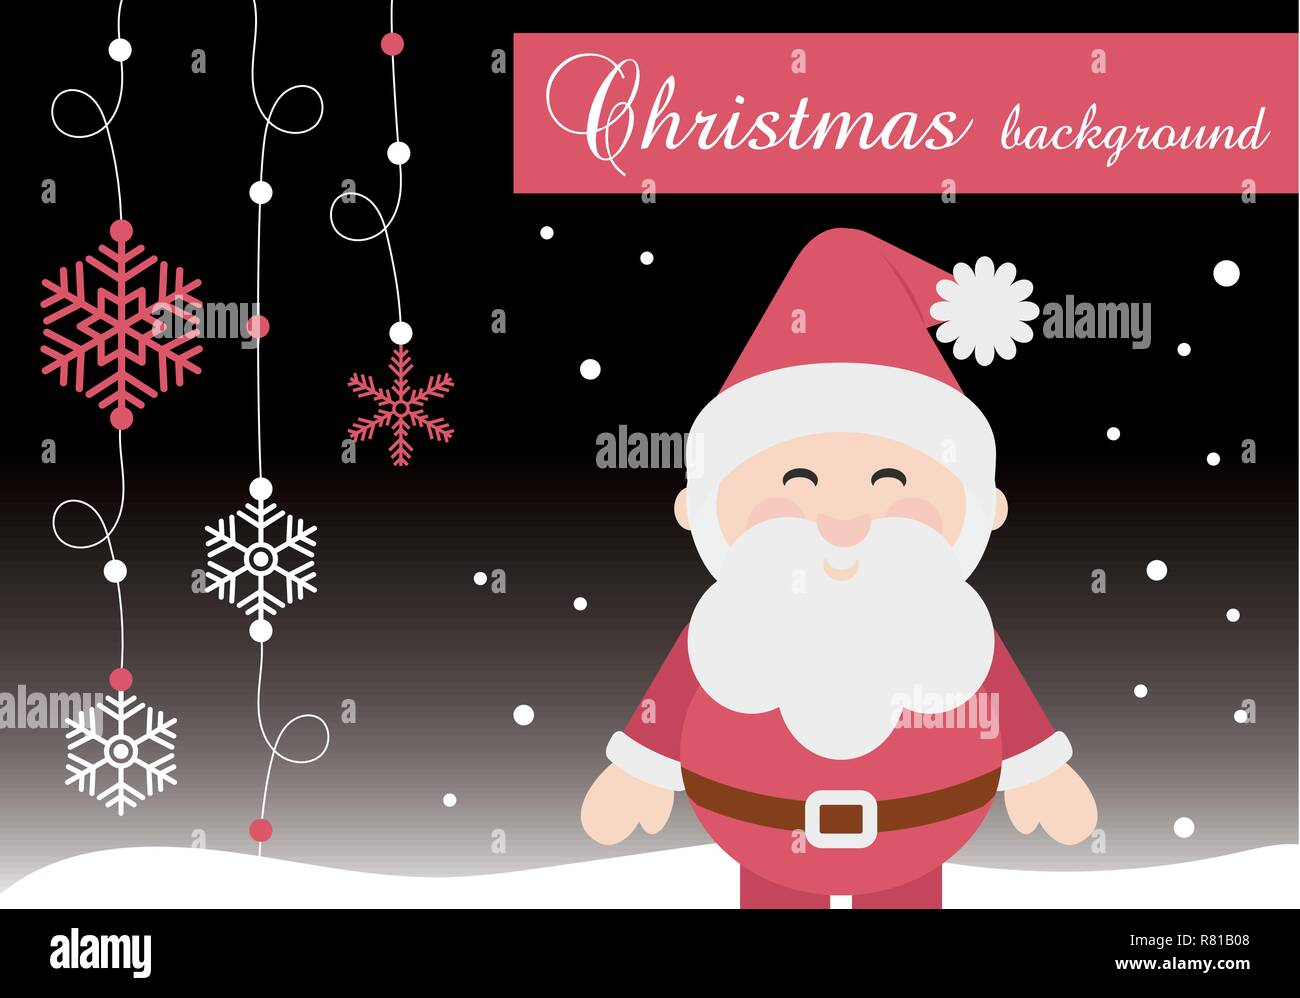 image regarding Printable Pictures of Santa Claus named Merry Xmas Adorable Santa Claus Vector Instance